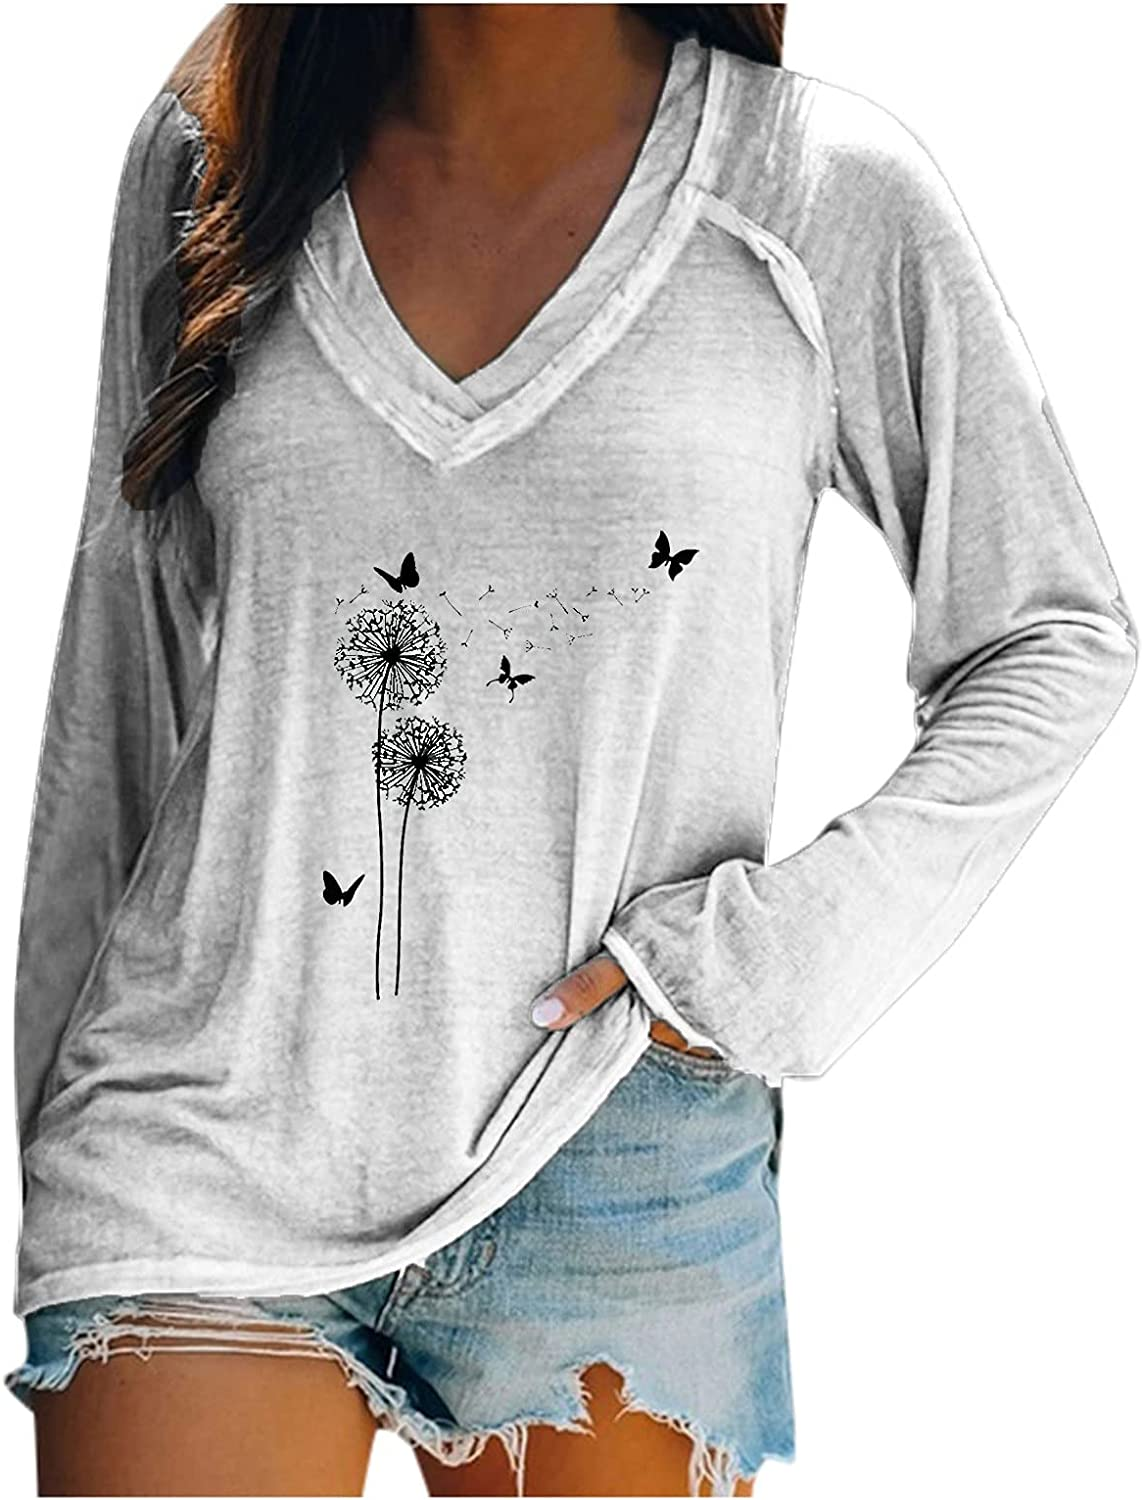 5665 Women's Long Sleeve Tunic Tops Casual V-Neck Graphic Shirts Loose Fit Pullover Tee Sweatshirts Workout Street Blouses